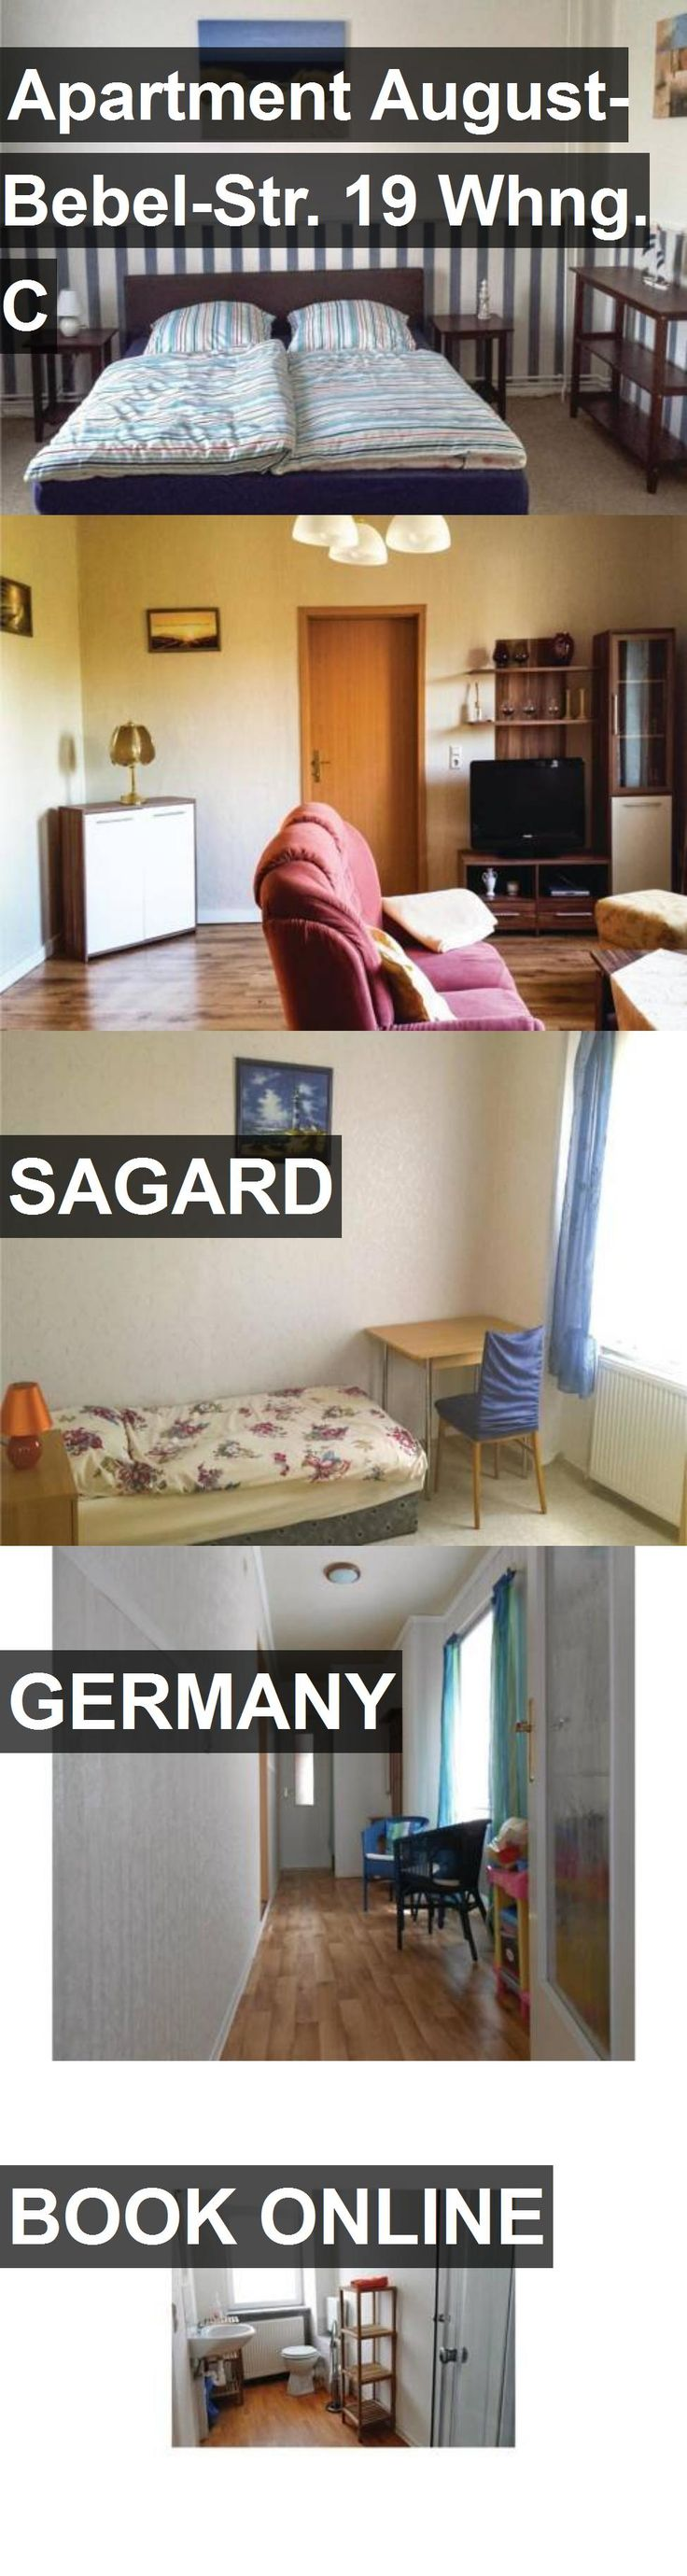 Hotel Apartment August-Bebel-Str. 19 Whng. C in Sagard, Germany. For more information, photos, reviews and best prices please follow the link. #Germany #Sagard #ApartmentAugust-Bebel-Str.19Whng.C #hotel #travel #vacation